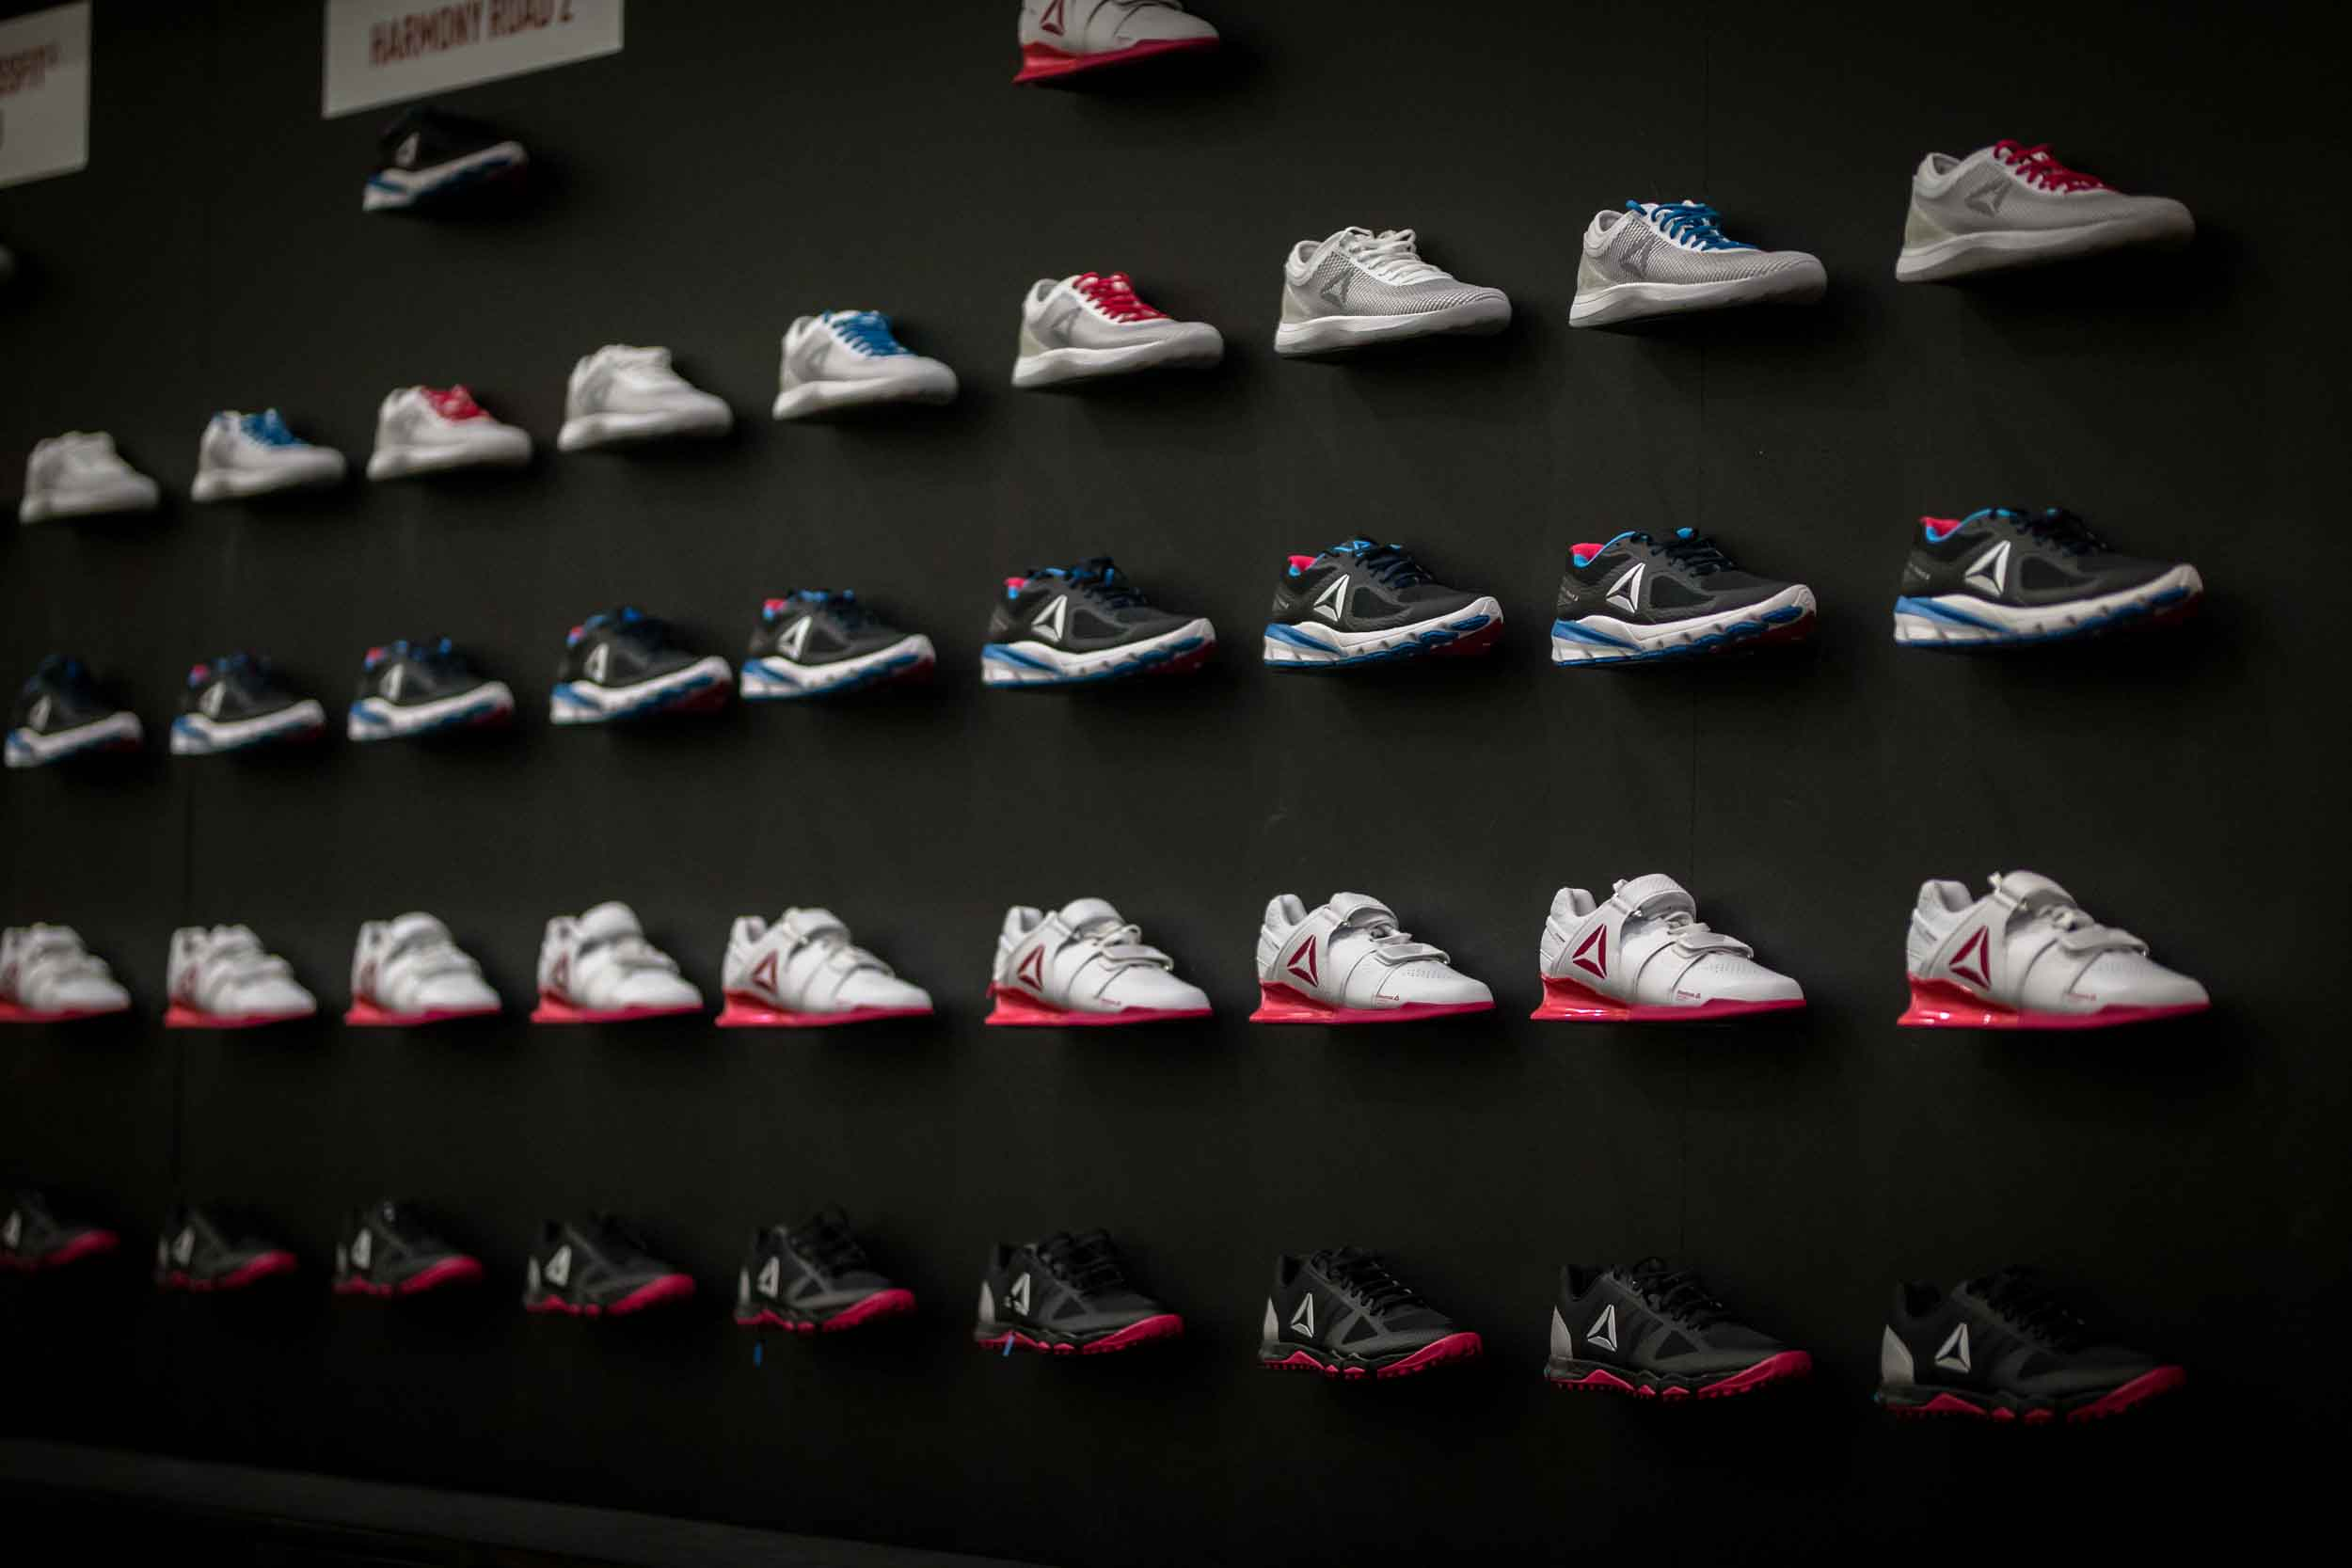 games-gear-shoes-1